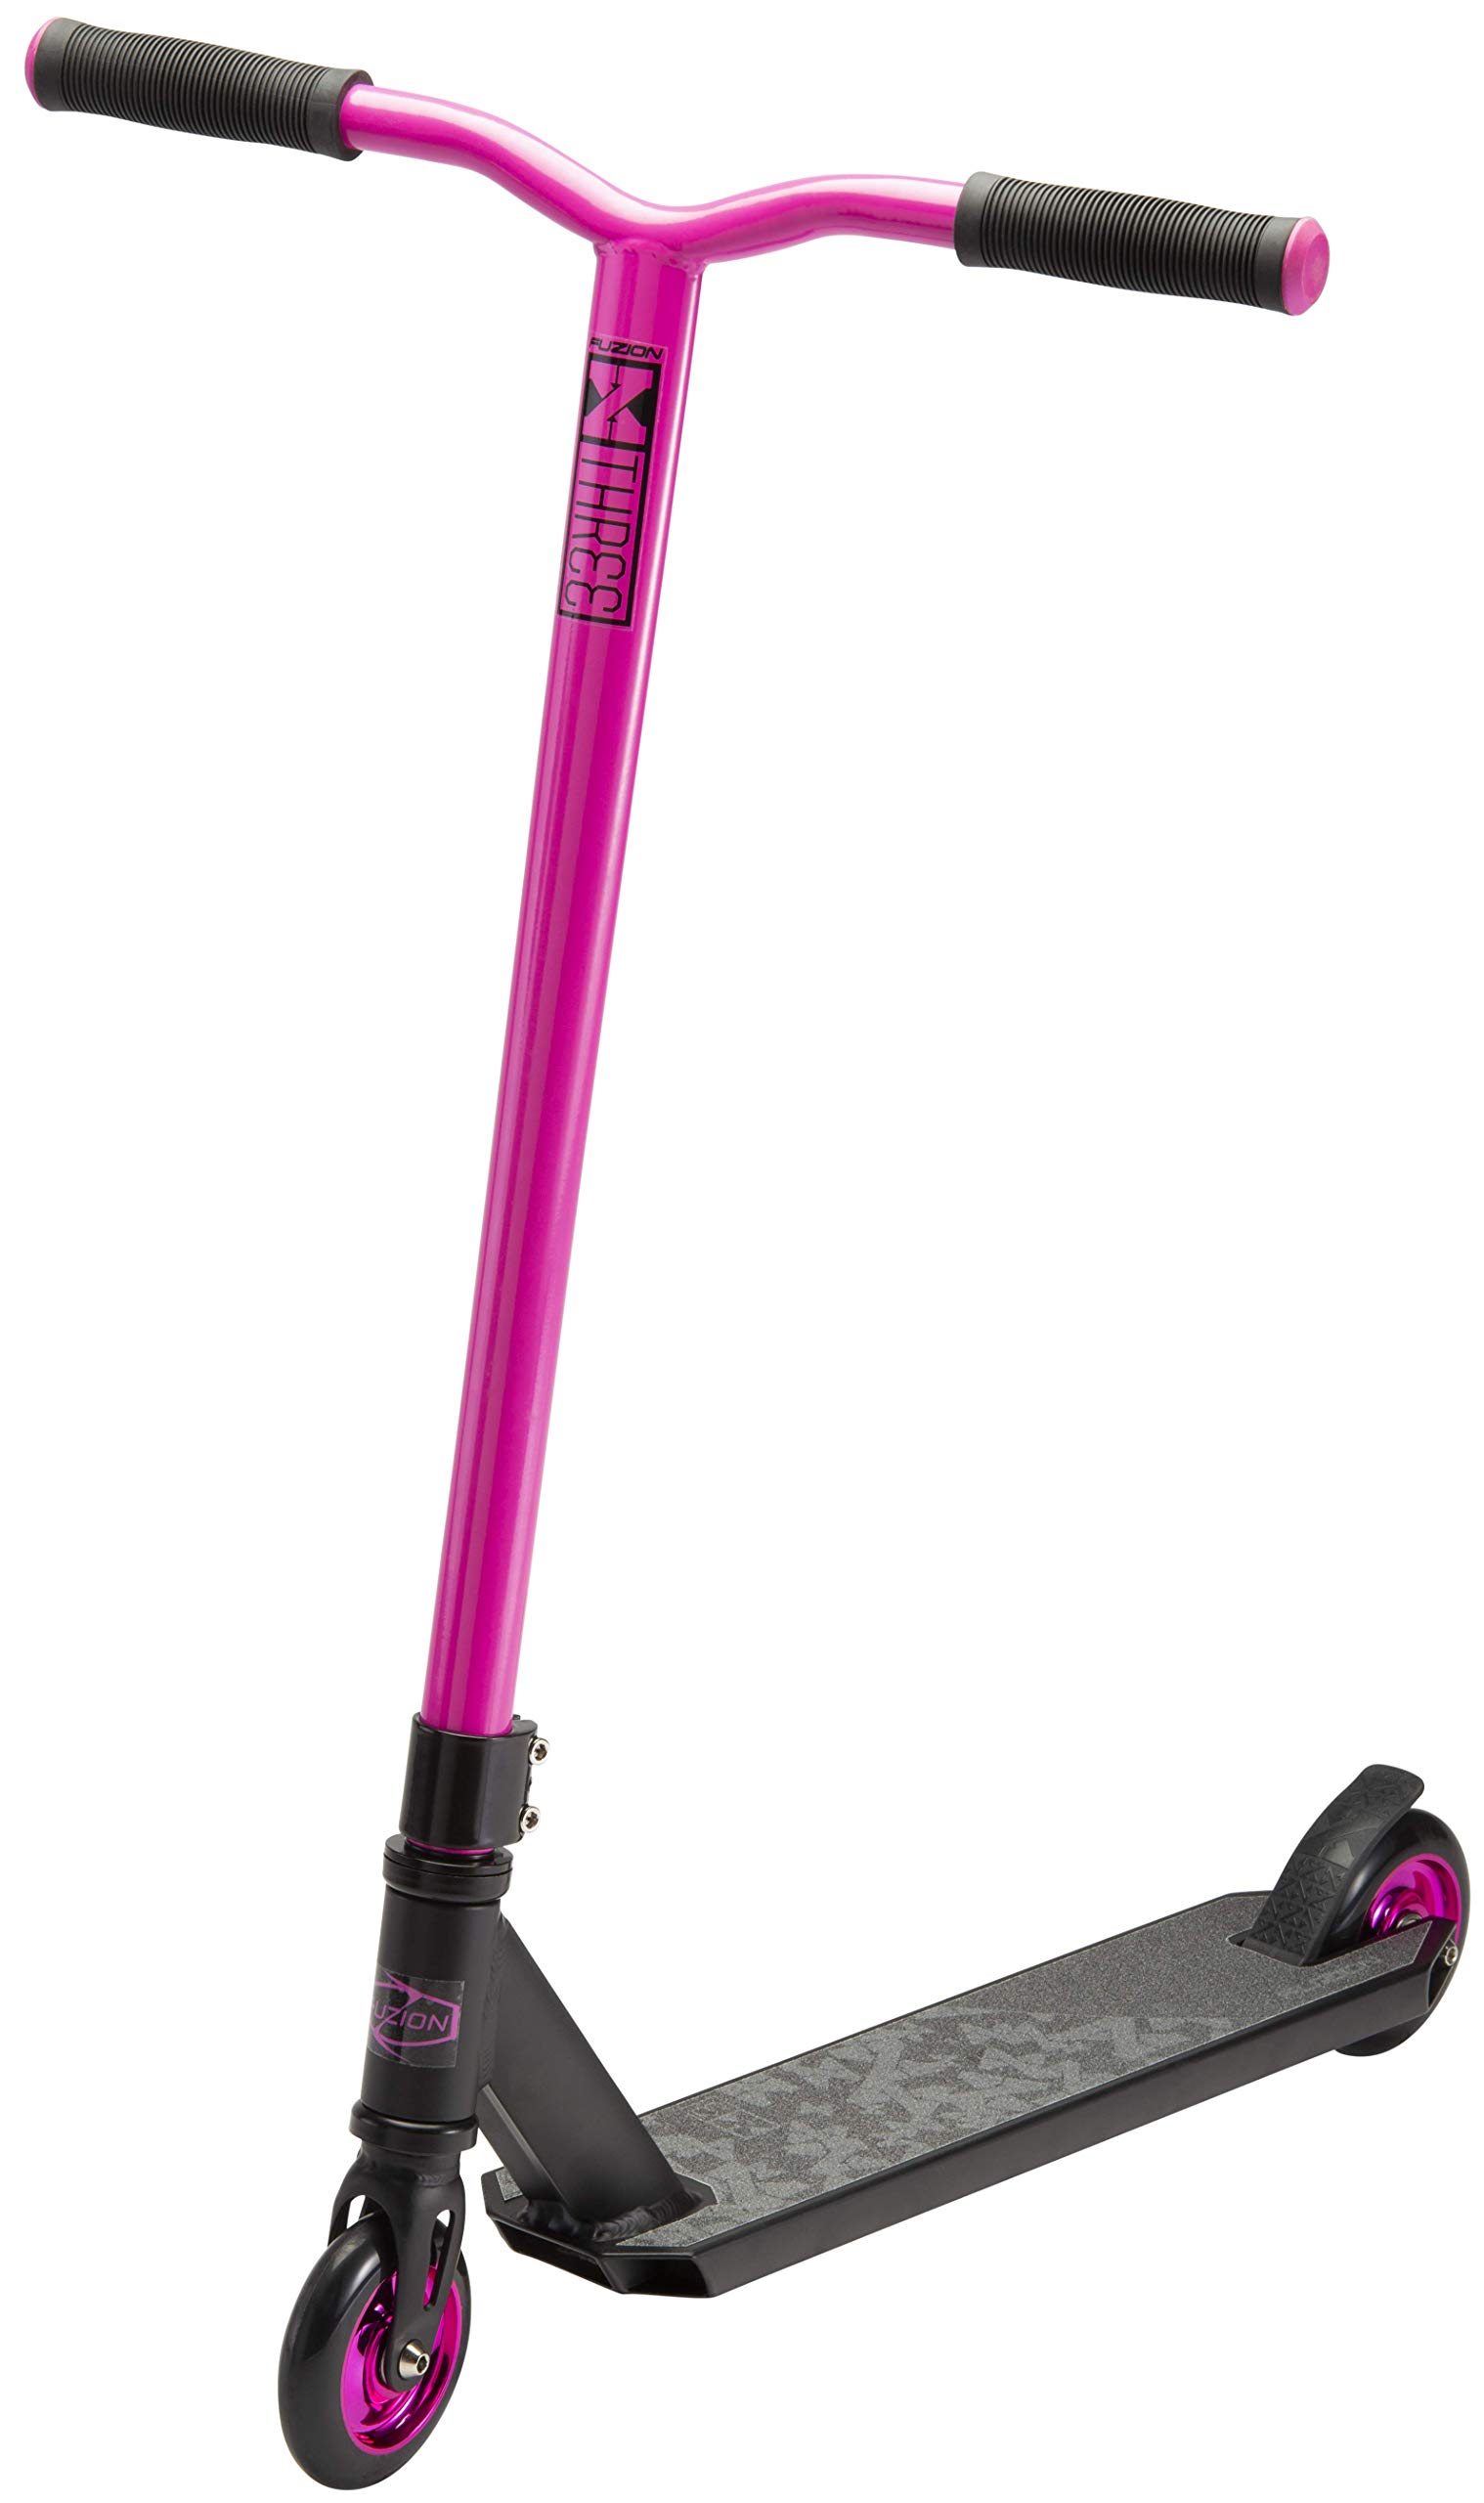 Fuzion X-3 Pro Scooter (Black/Pink) by Fuzion